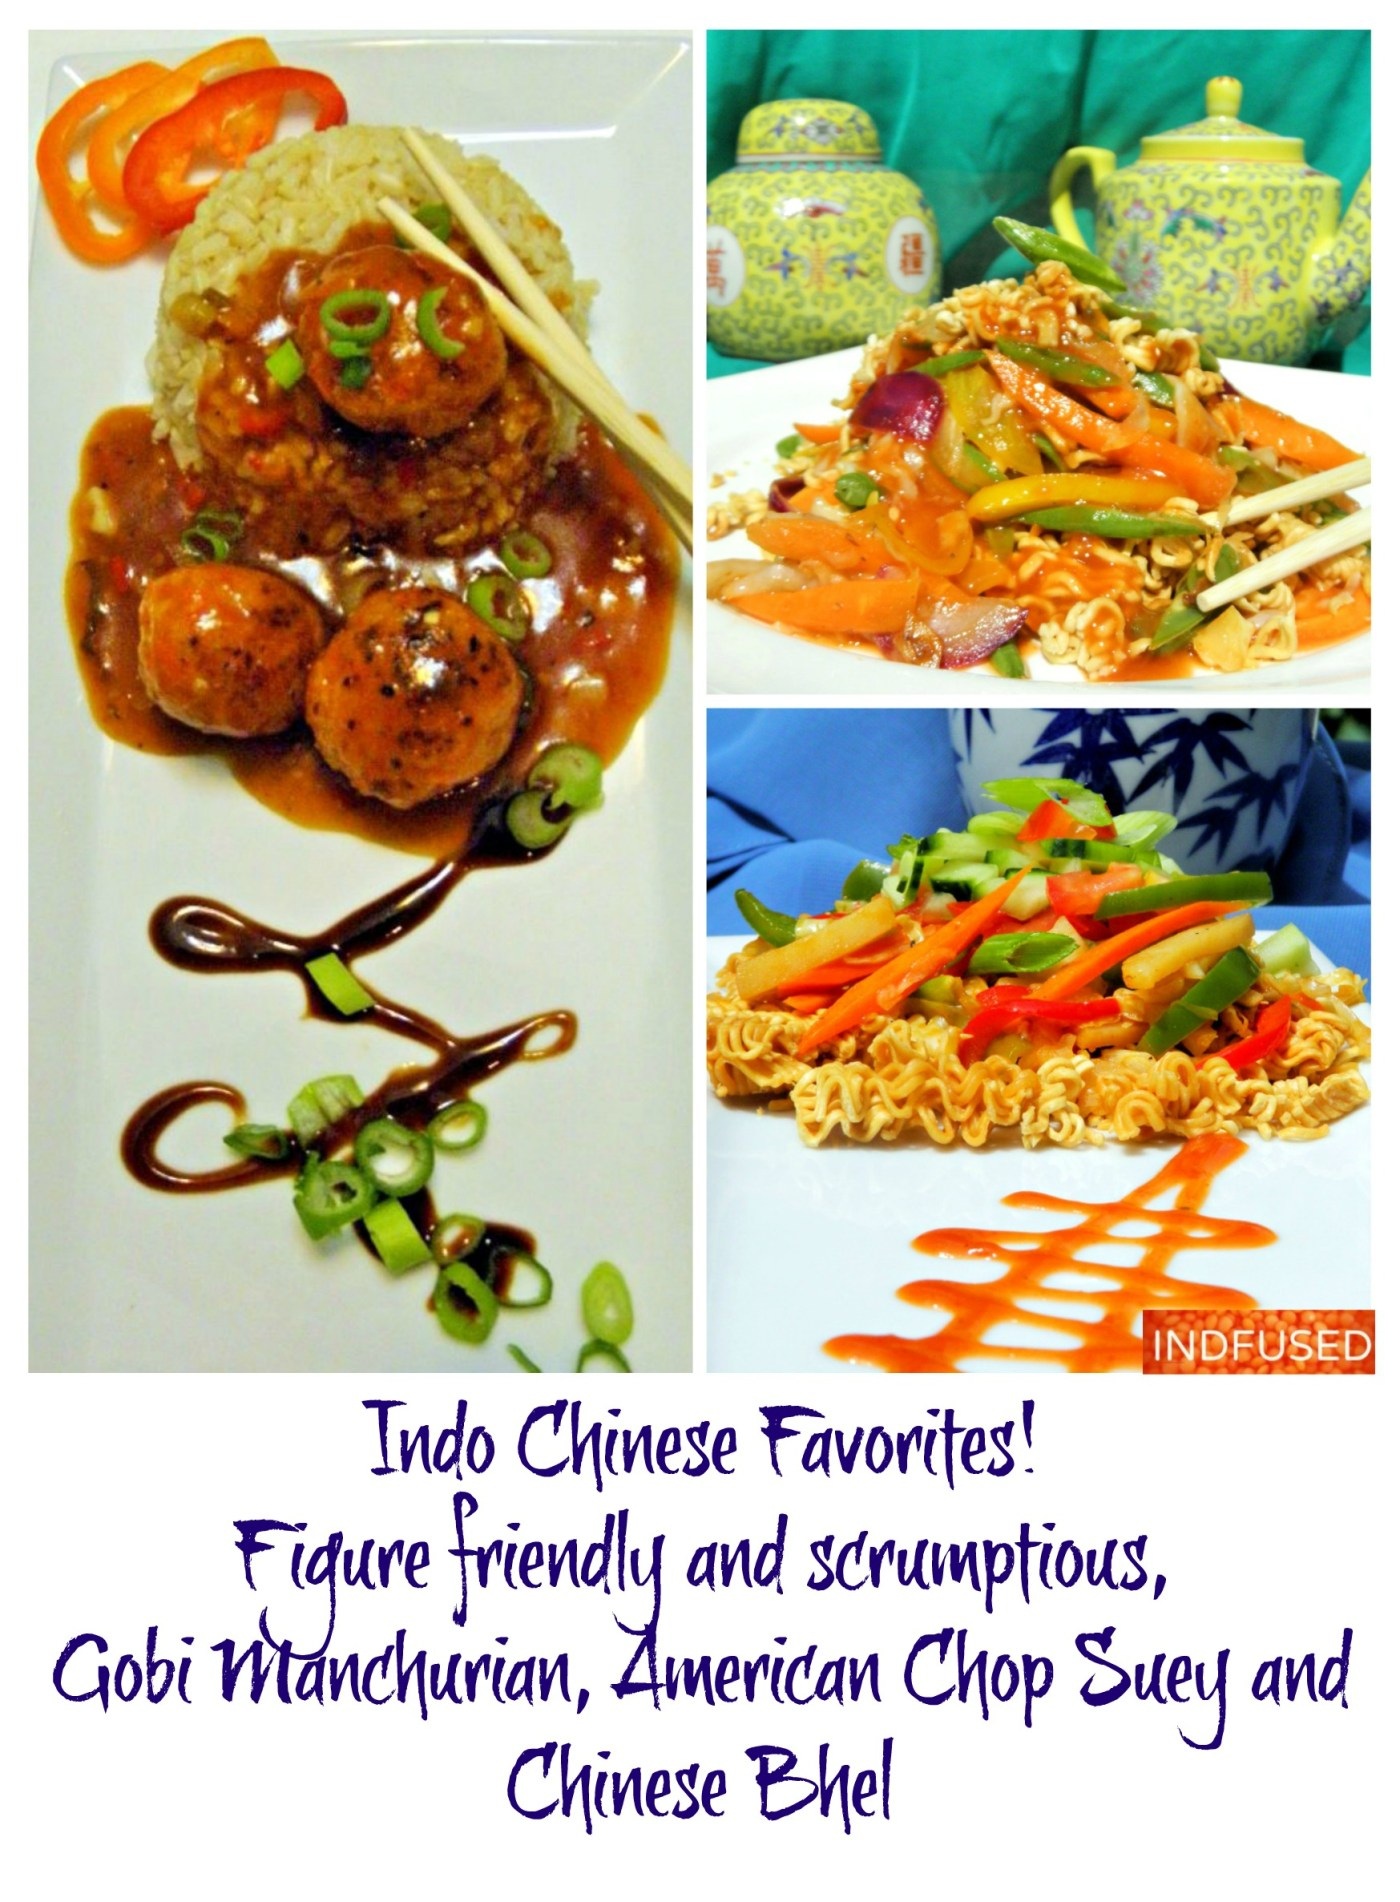 Immensely popular #IndianChinese #gobimanchurian, America Chop suey and chinese bhel